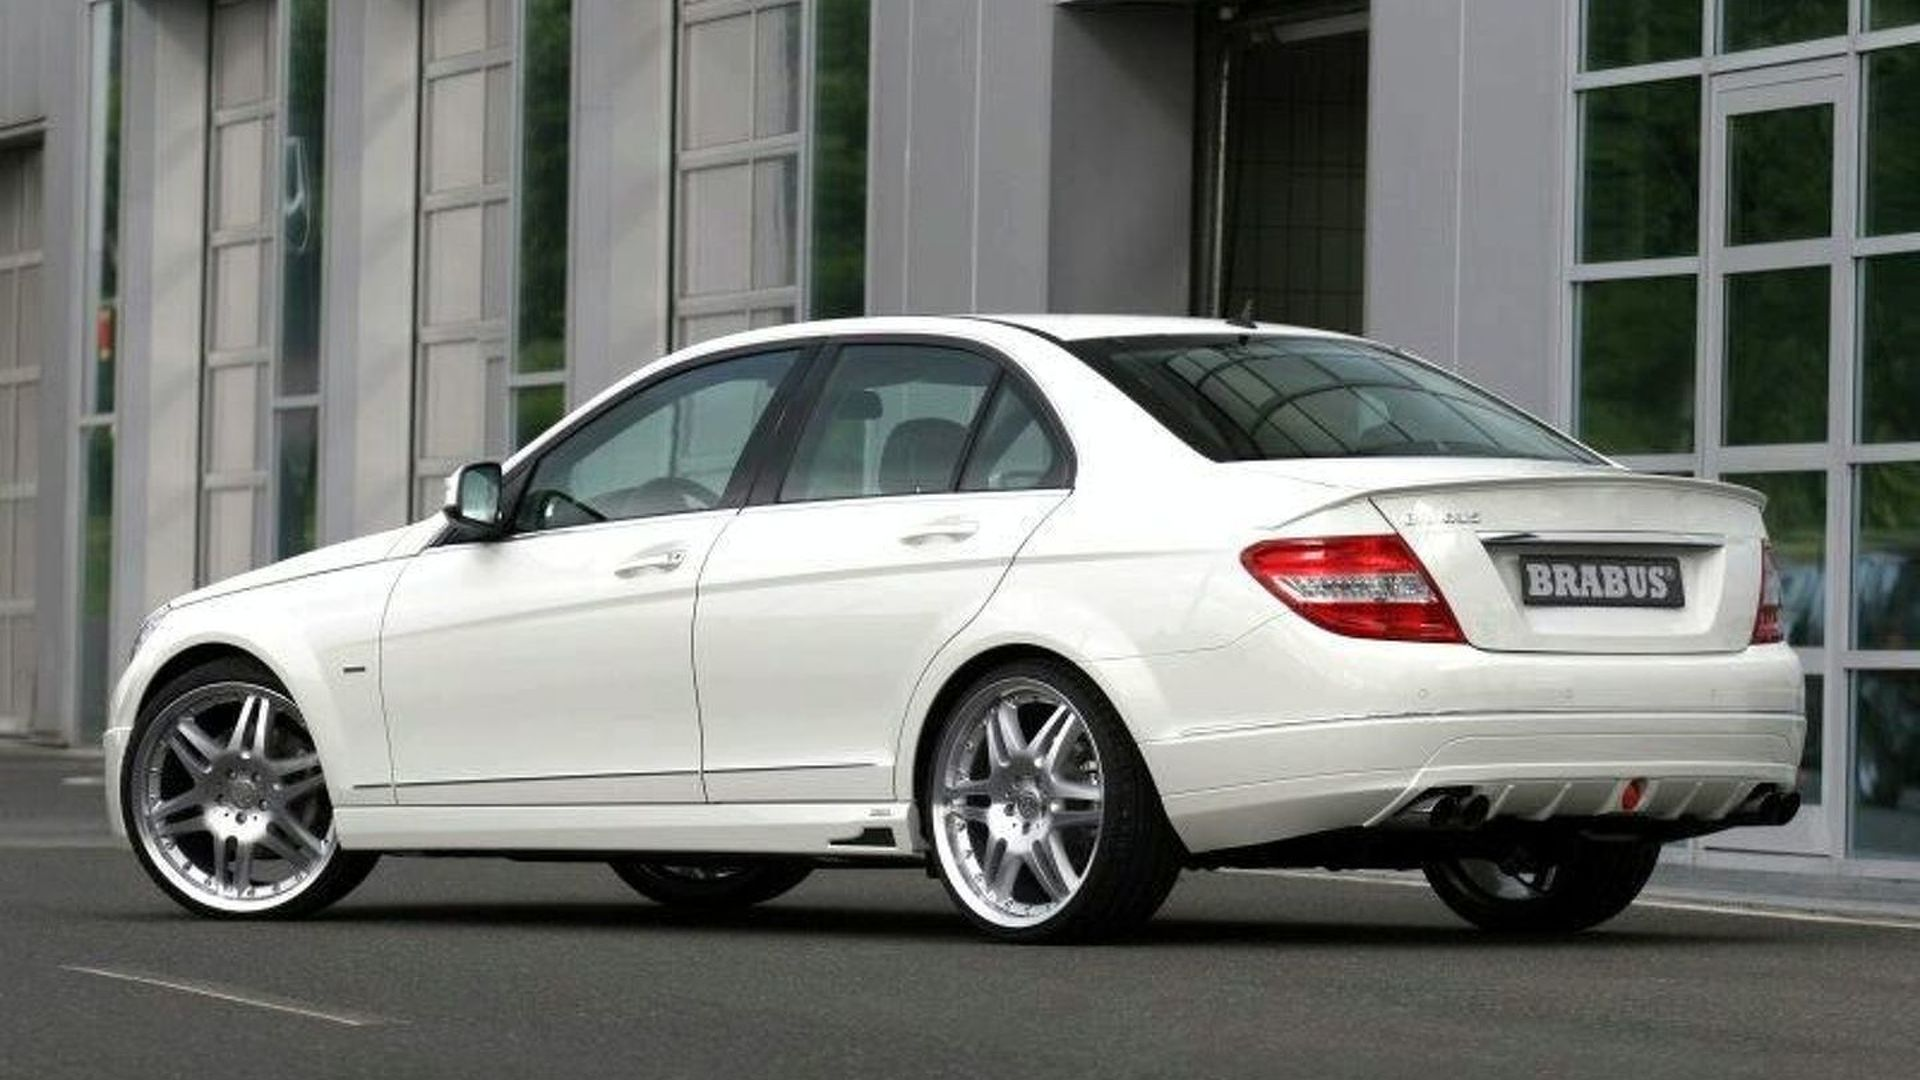 BRABUS Power Upgrade for New Mercedes C 220 CDI